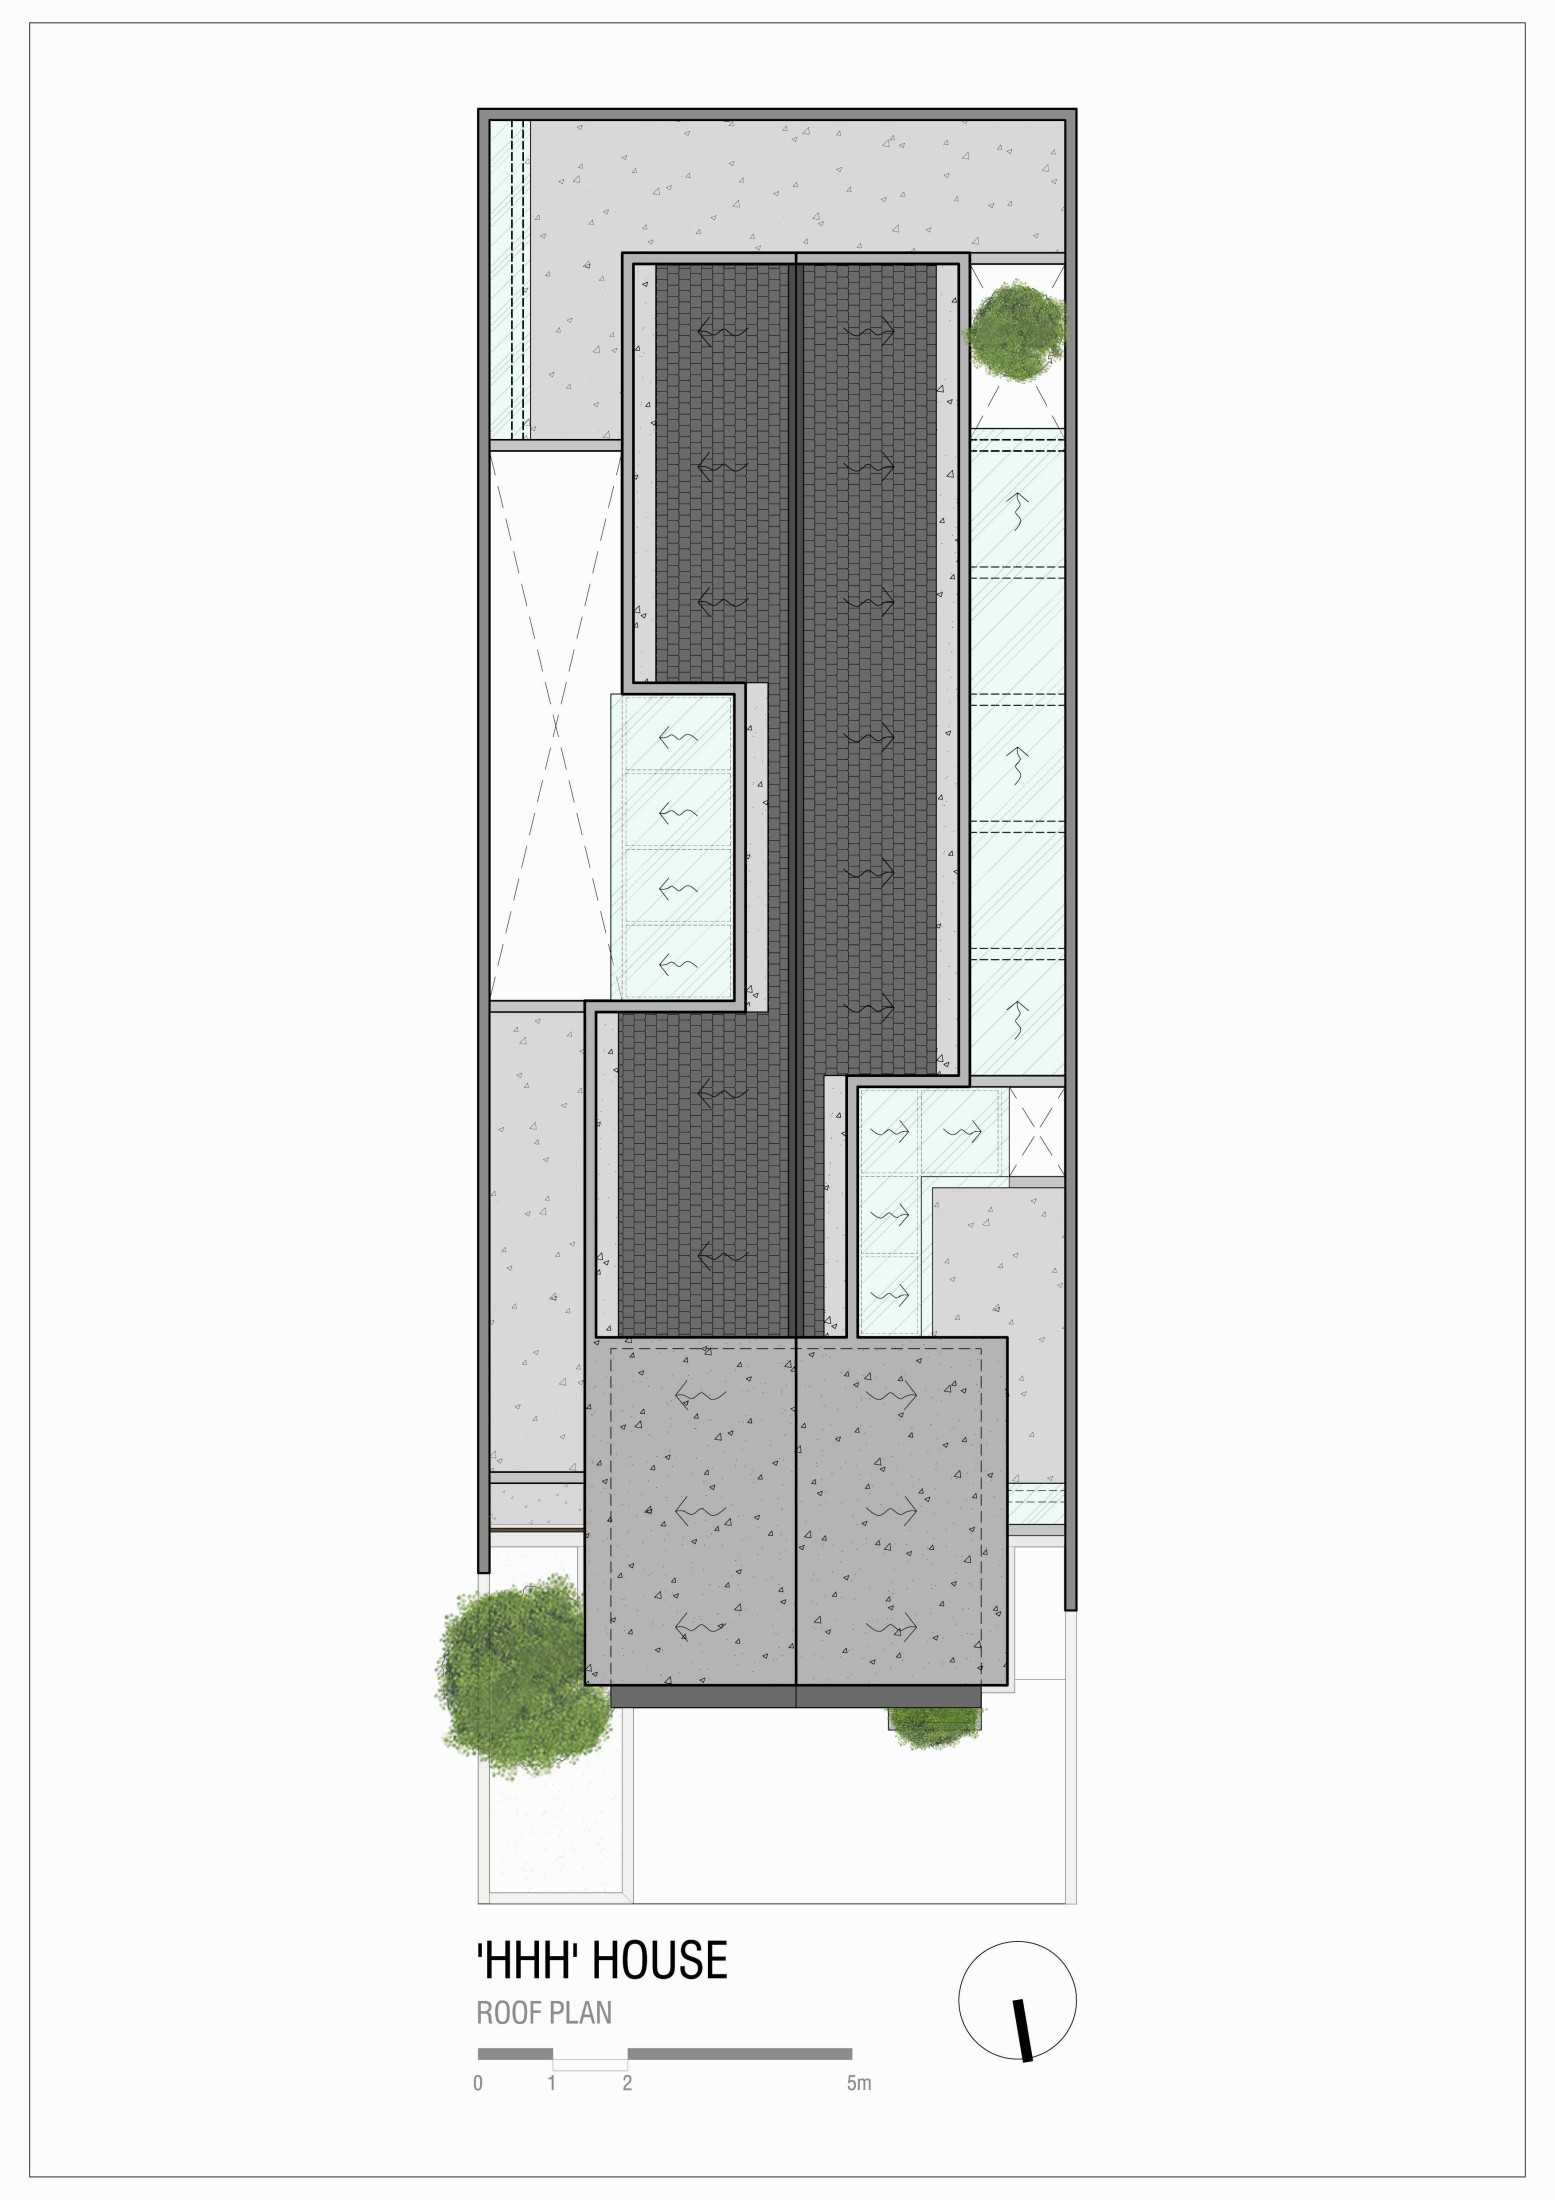 Simple Projects Architecture 'hhh' House Surabaya, Kota Sby, Jawa Timur, Indonesia  Simple-Projects-Architecture-Hhh-House  75097